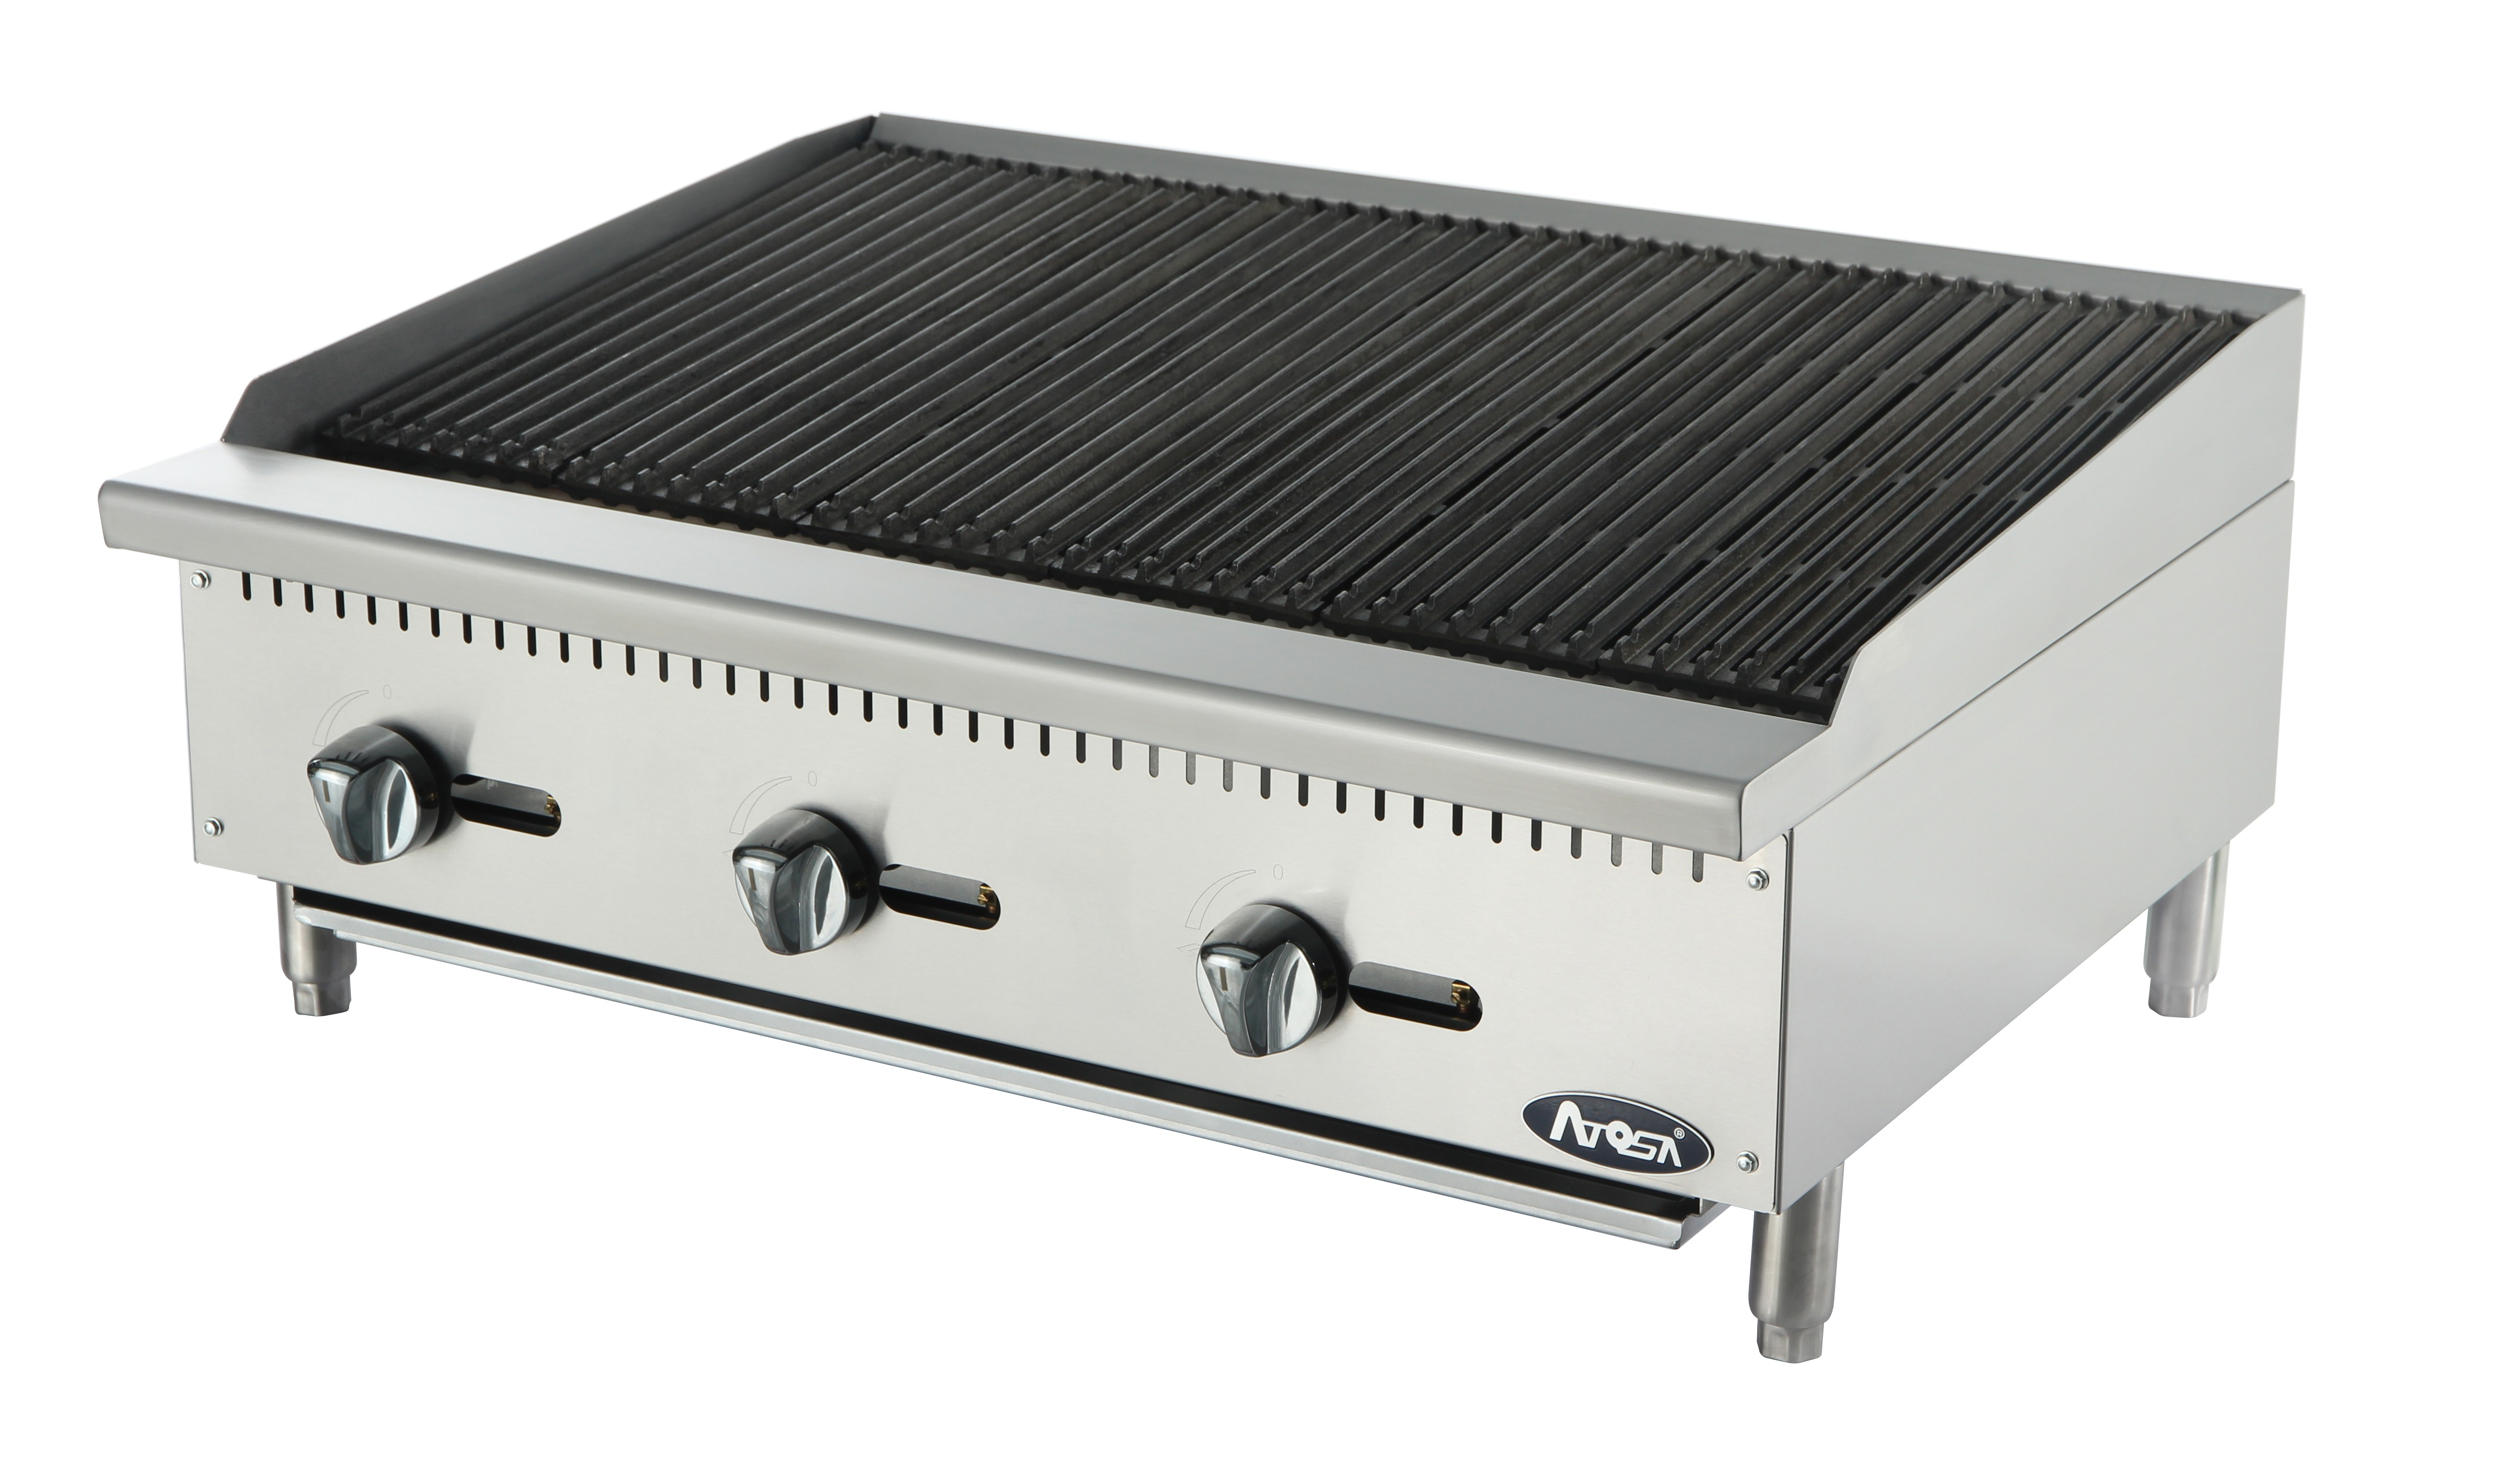 Atosa ATCB-36 HD Heavy Duty Stainless Steel 36'' Char-Rock Broiler